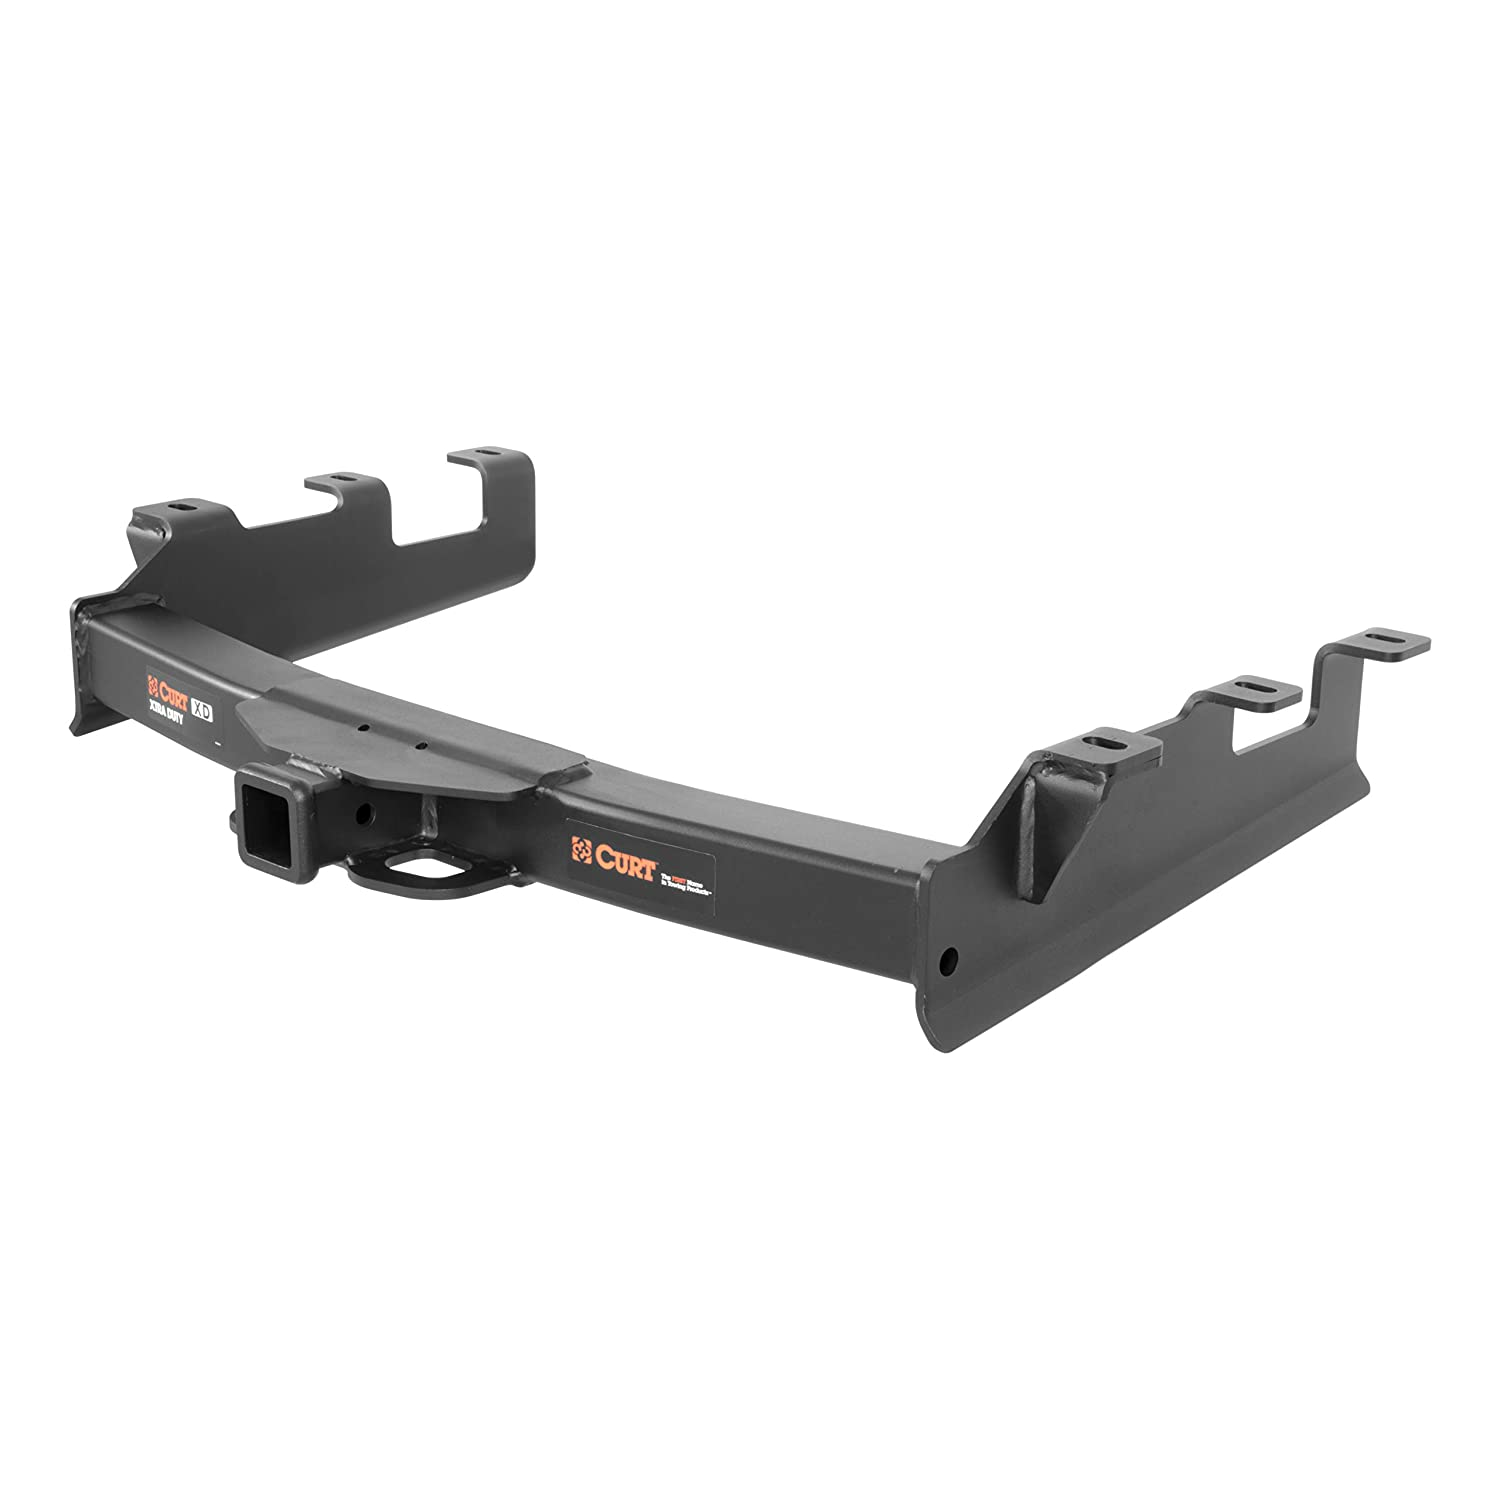 CURT 15302 Xtra Duty Trailer Hitch with 2-Inch Receiver, for Select  Chevrolet Silverado, GMC Sierra 2500